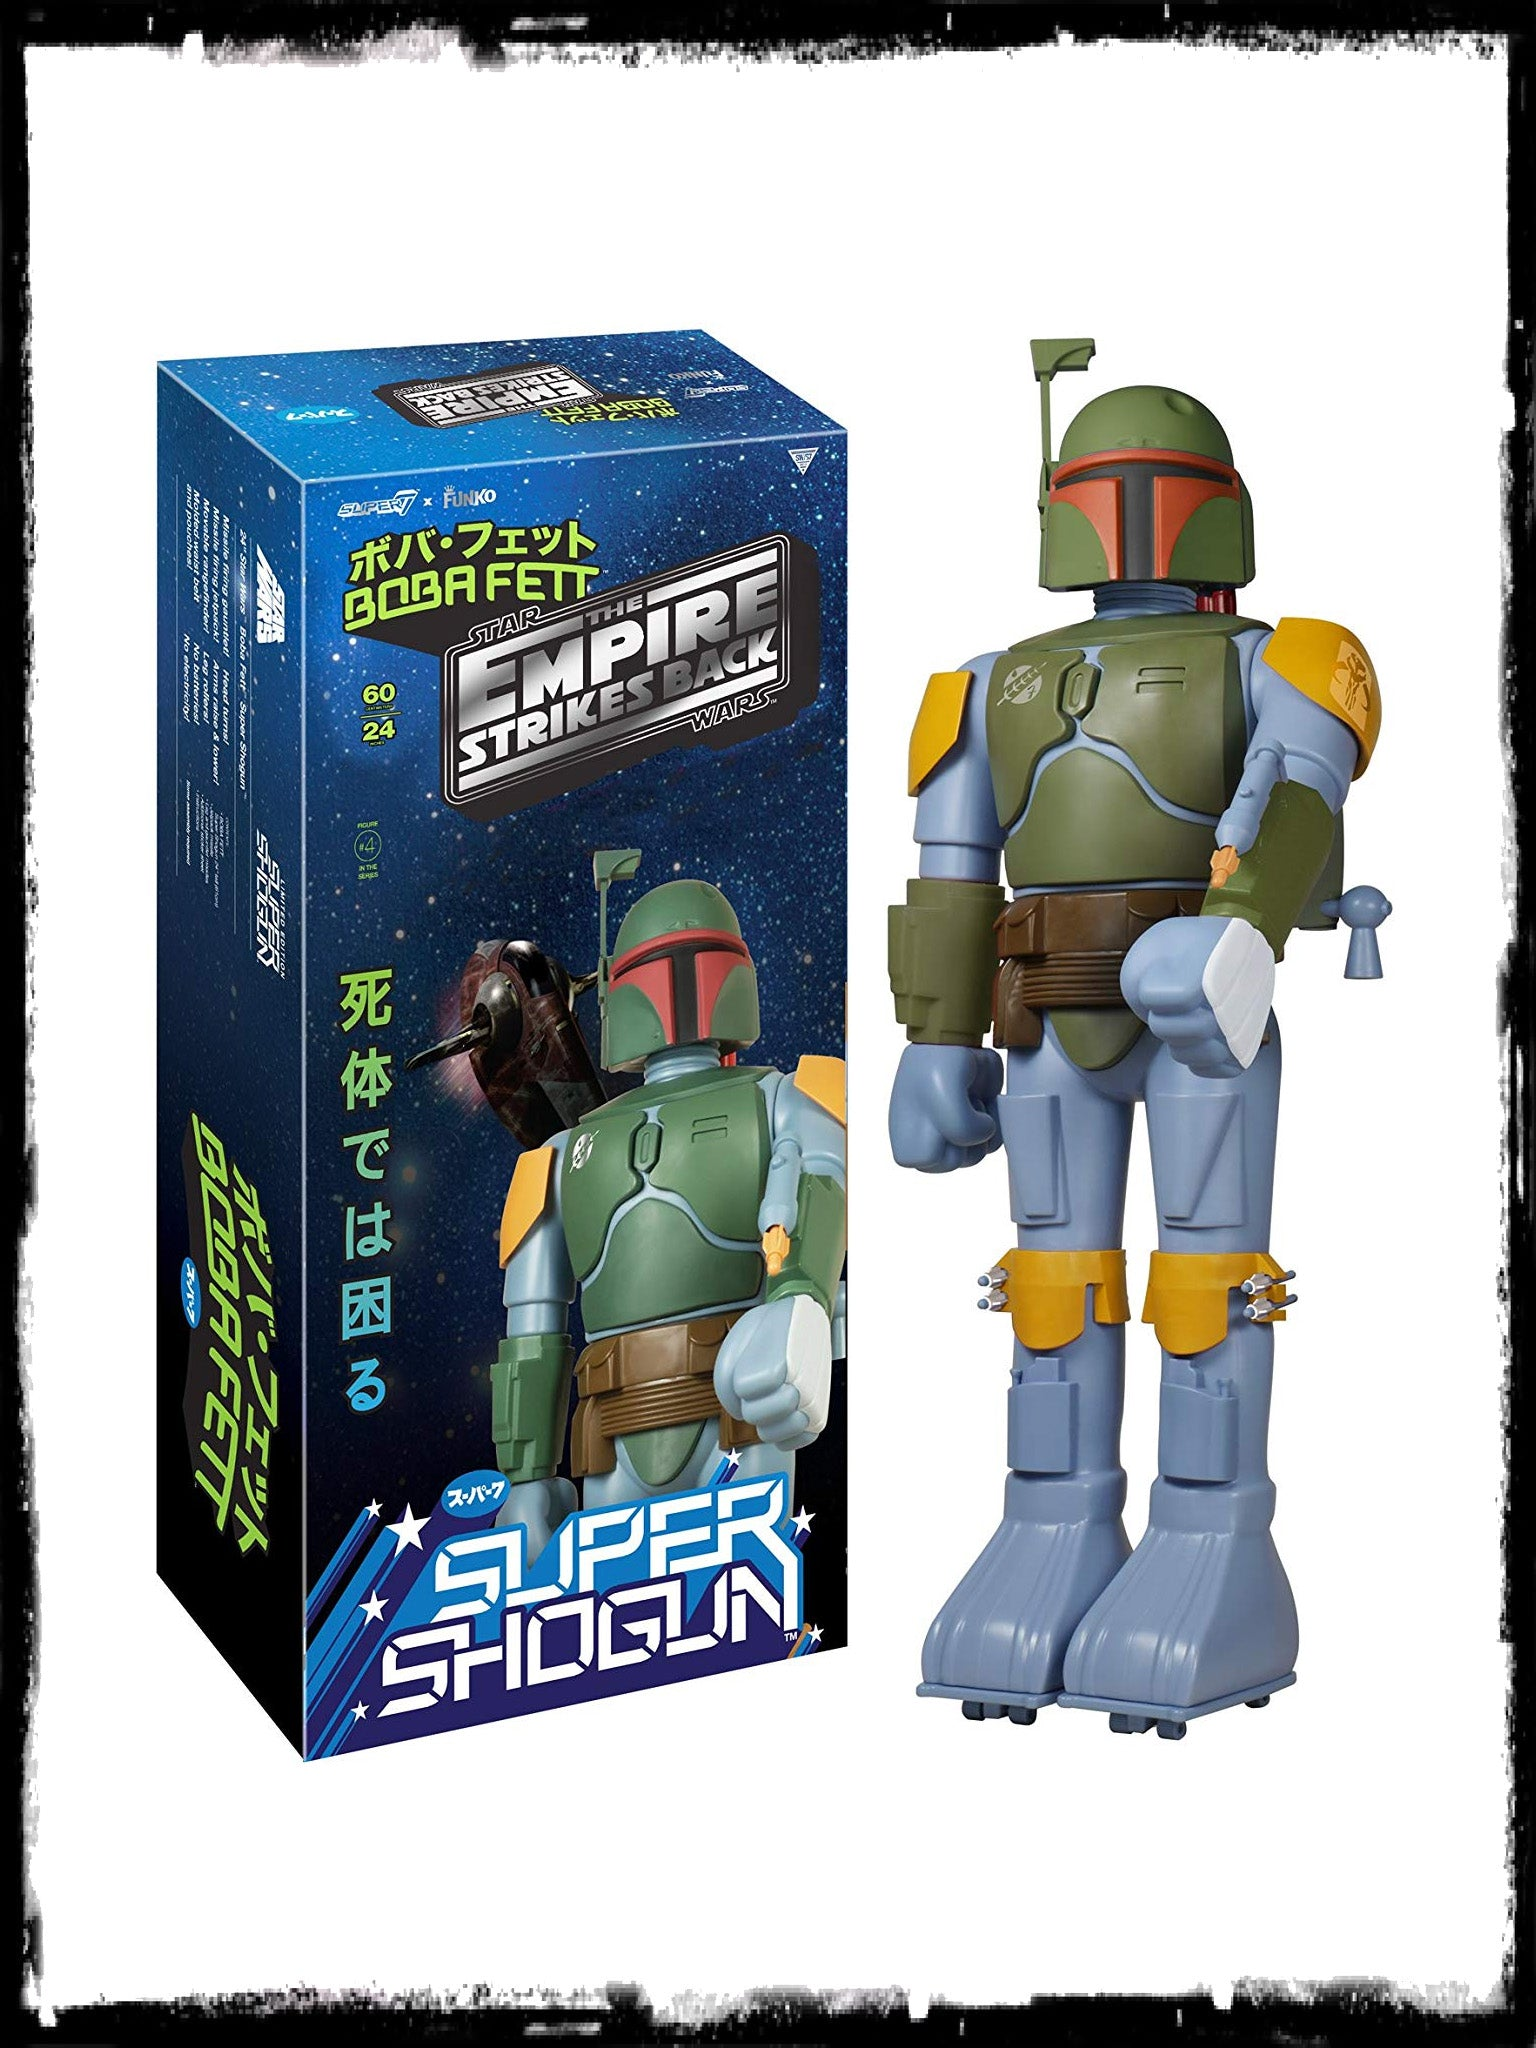 FUNKO SUPER SHOGUN BOBA FETT – EMPIRE STRIKES BACK 24-INCH ACTION FIGURE!